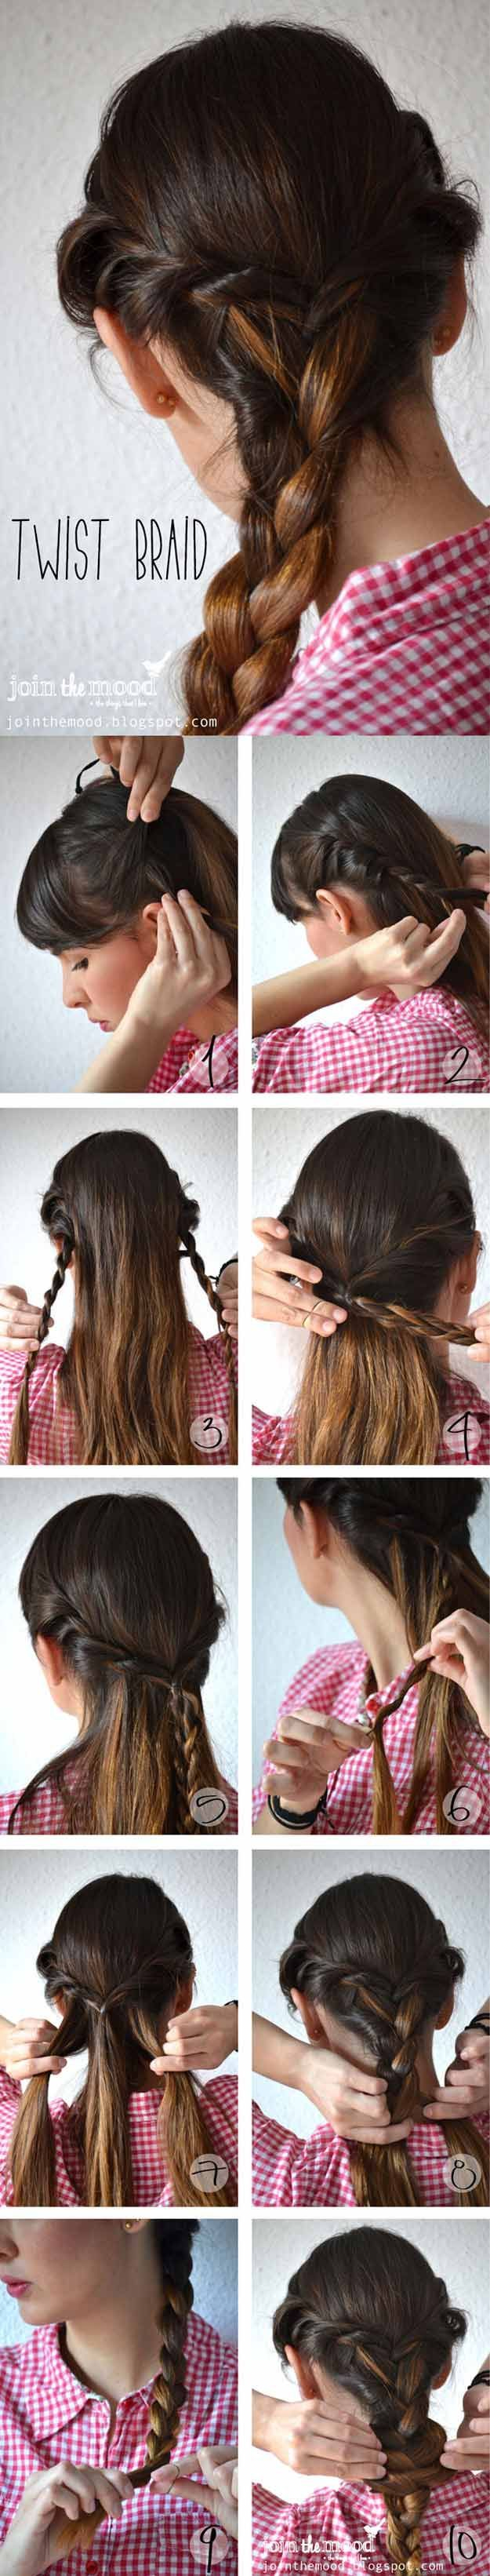 Best Hairstyles For Teens - Cute Hairstyles for School - Easy And Cute Haircuts And Hairstyles For Teens And Girls. Cute Ideas Like Braids And Tutorials And Tips For All Types Of Teen Hair From Short Hair To Medium Length Hair And Even Some Great Hair Styles For Long Hair. Super Cute Back To School Hairstyles And The Most Popular Looks For Summer and Fall. Try A Bob or A Half Up Half Down Style. Or Use The Simple Pony That Is Great For Prom, Gym Class, or Just After School. Back-To-School…